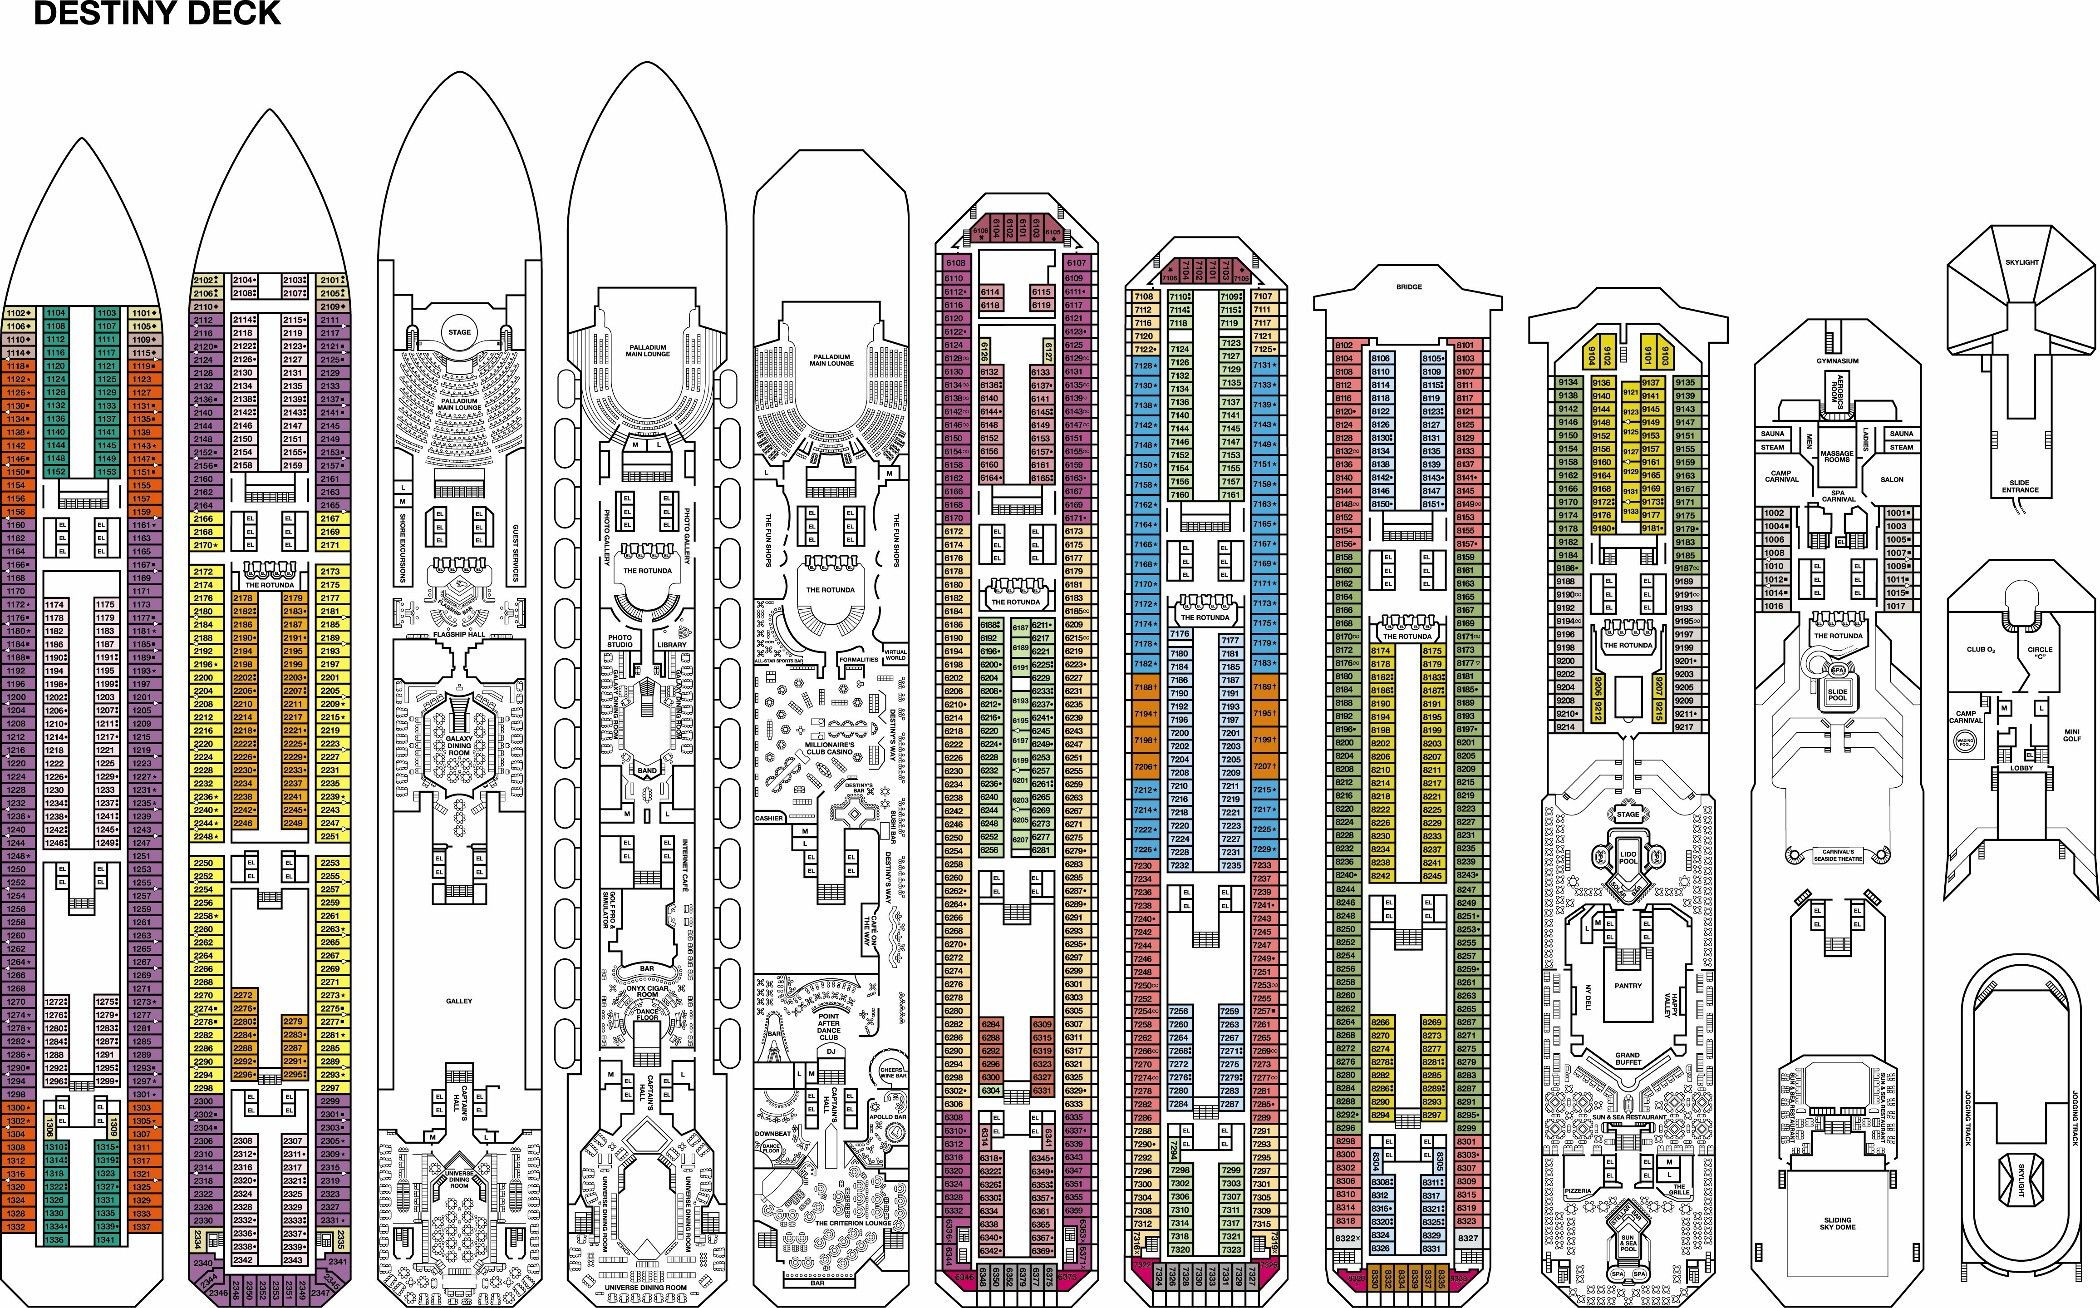 Carnival Cruise Ship Fascination Deck Plans Cruceros Barcos